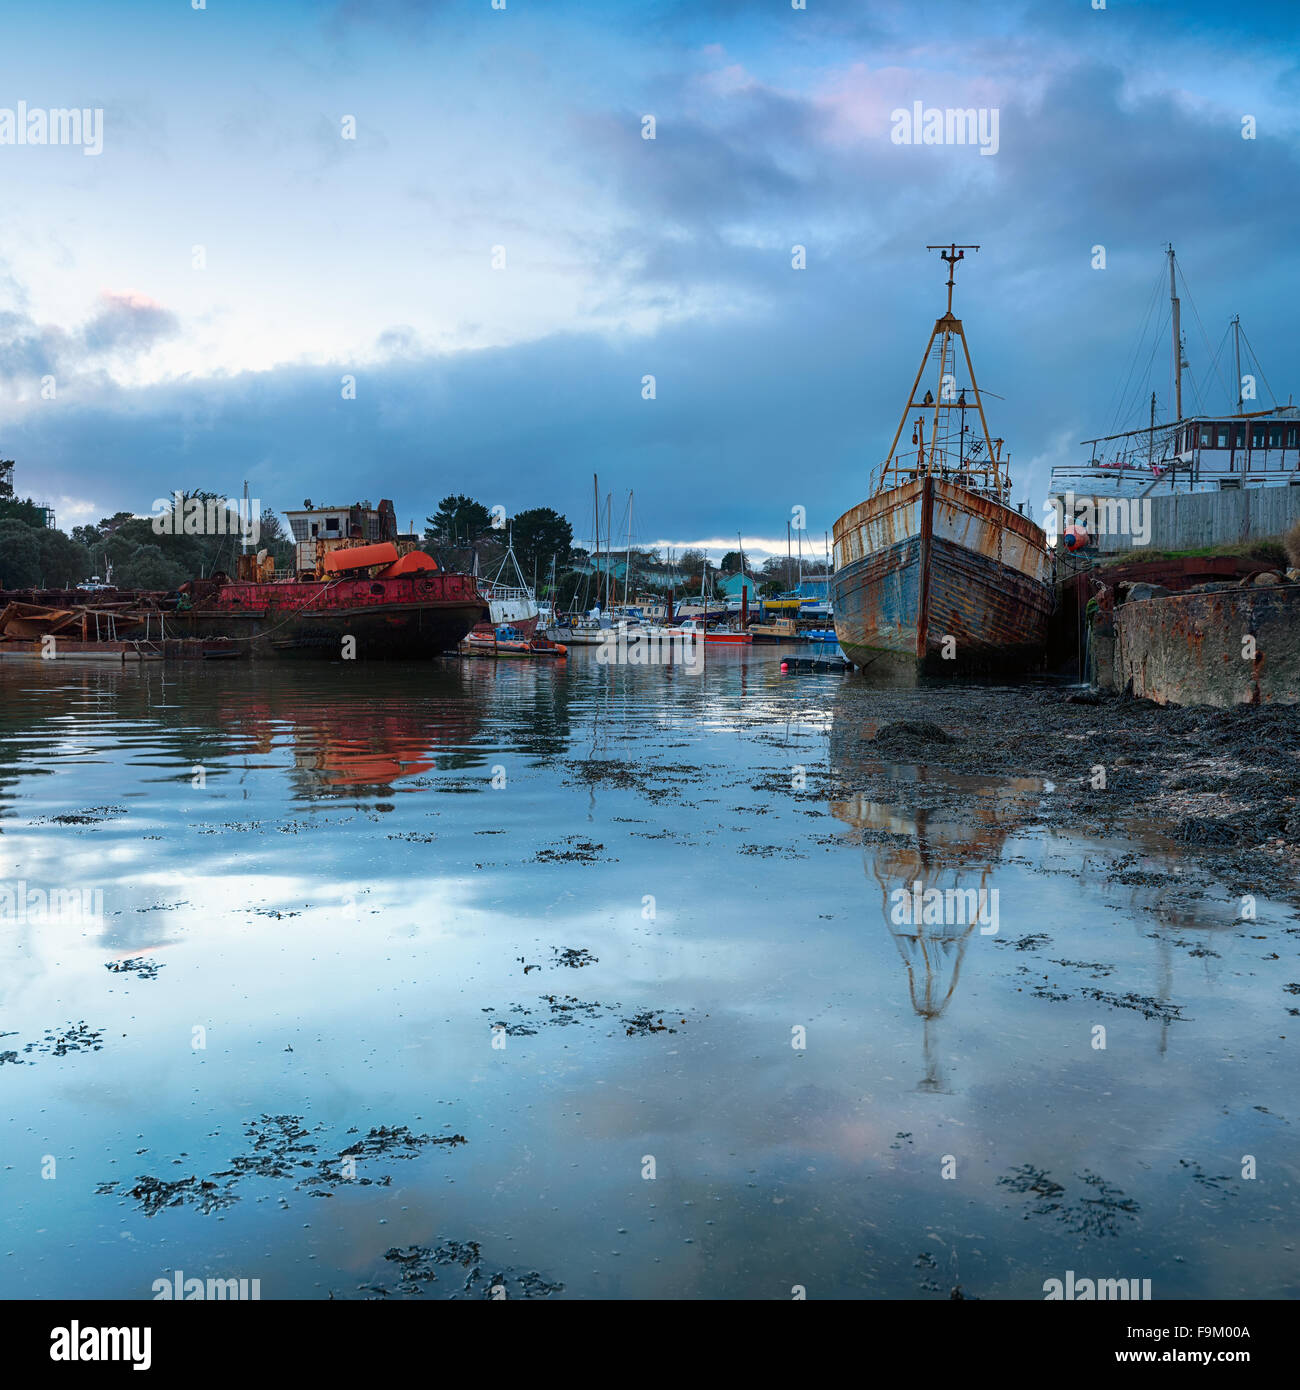 An old boat yard at Torpoint in Cornwall where the river Tamar meets the sea - Stock Image